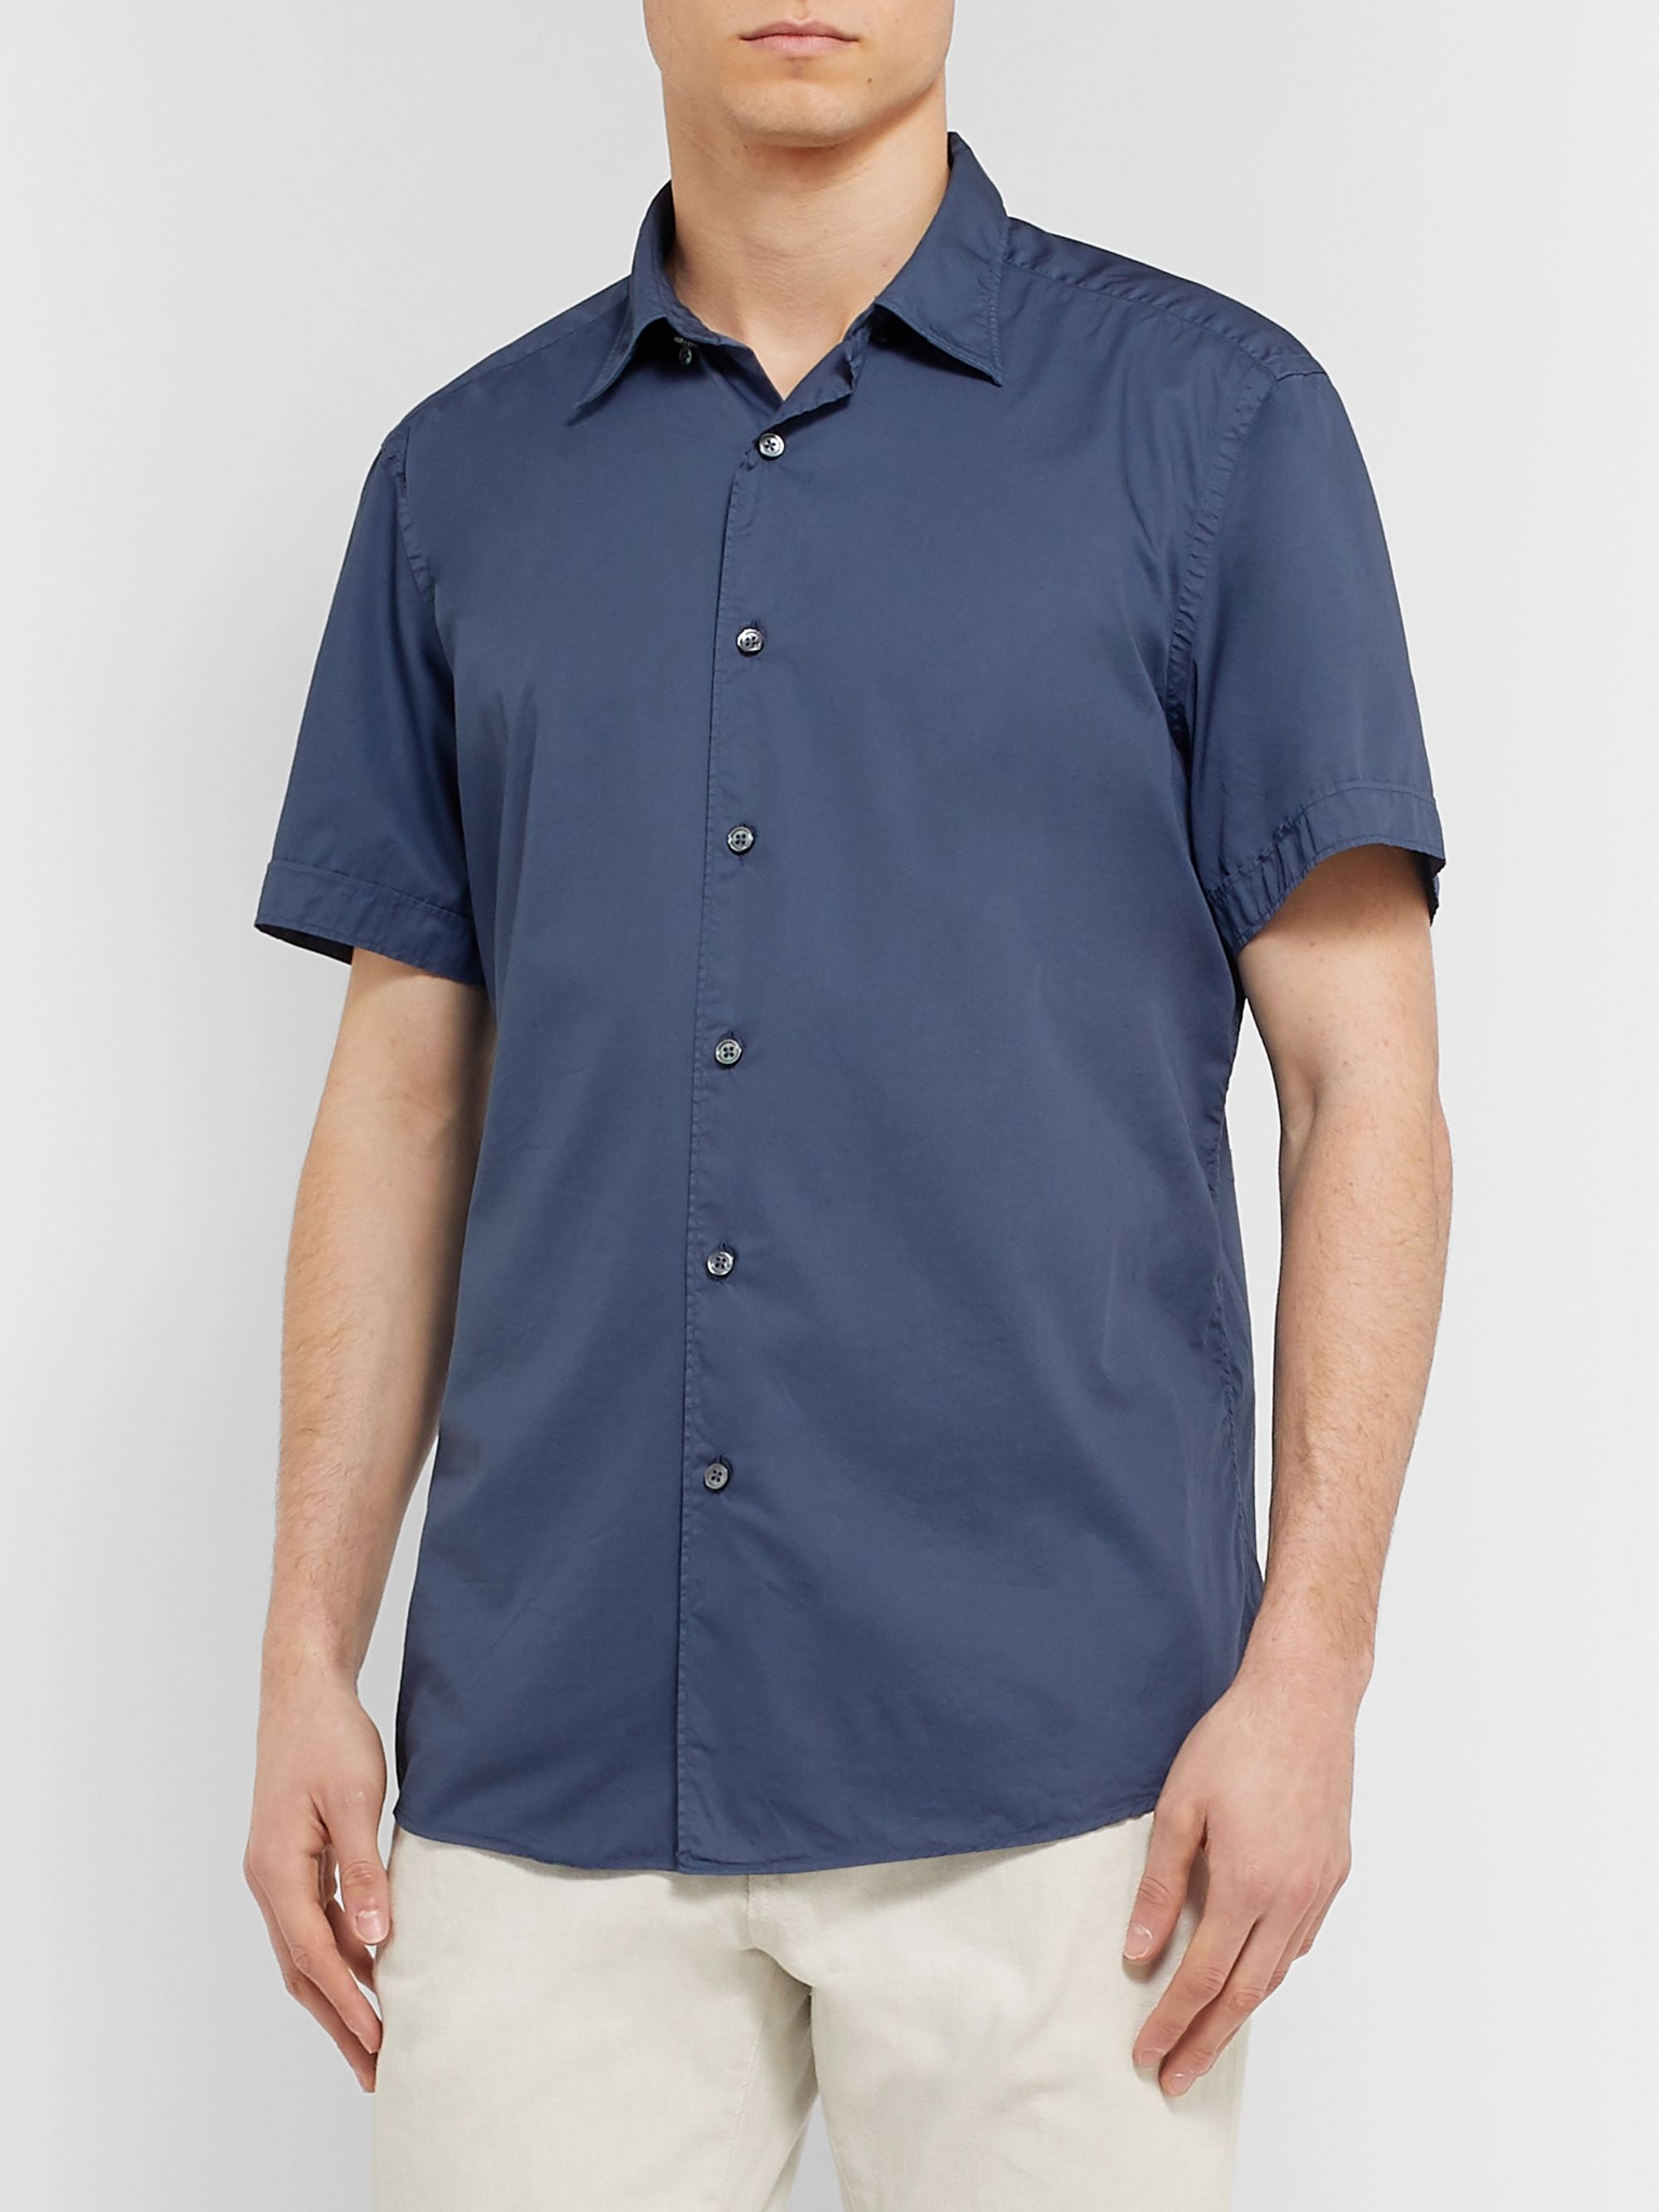 Ermenegildo Zegna Cotton Shirt